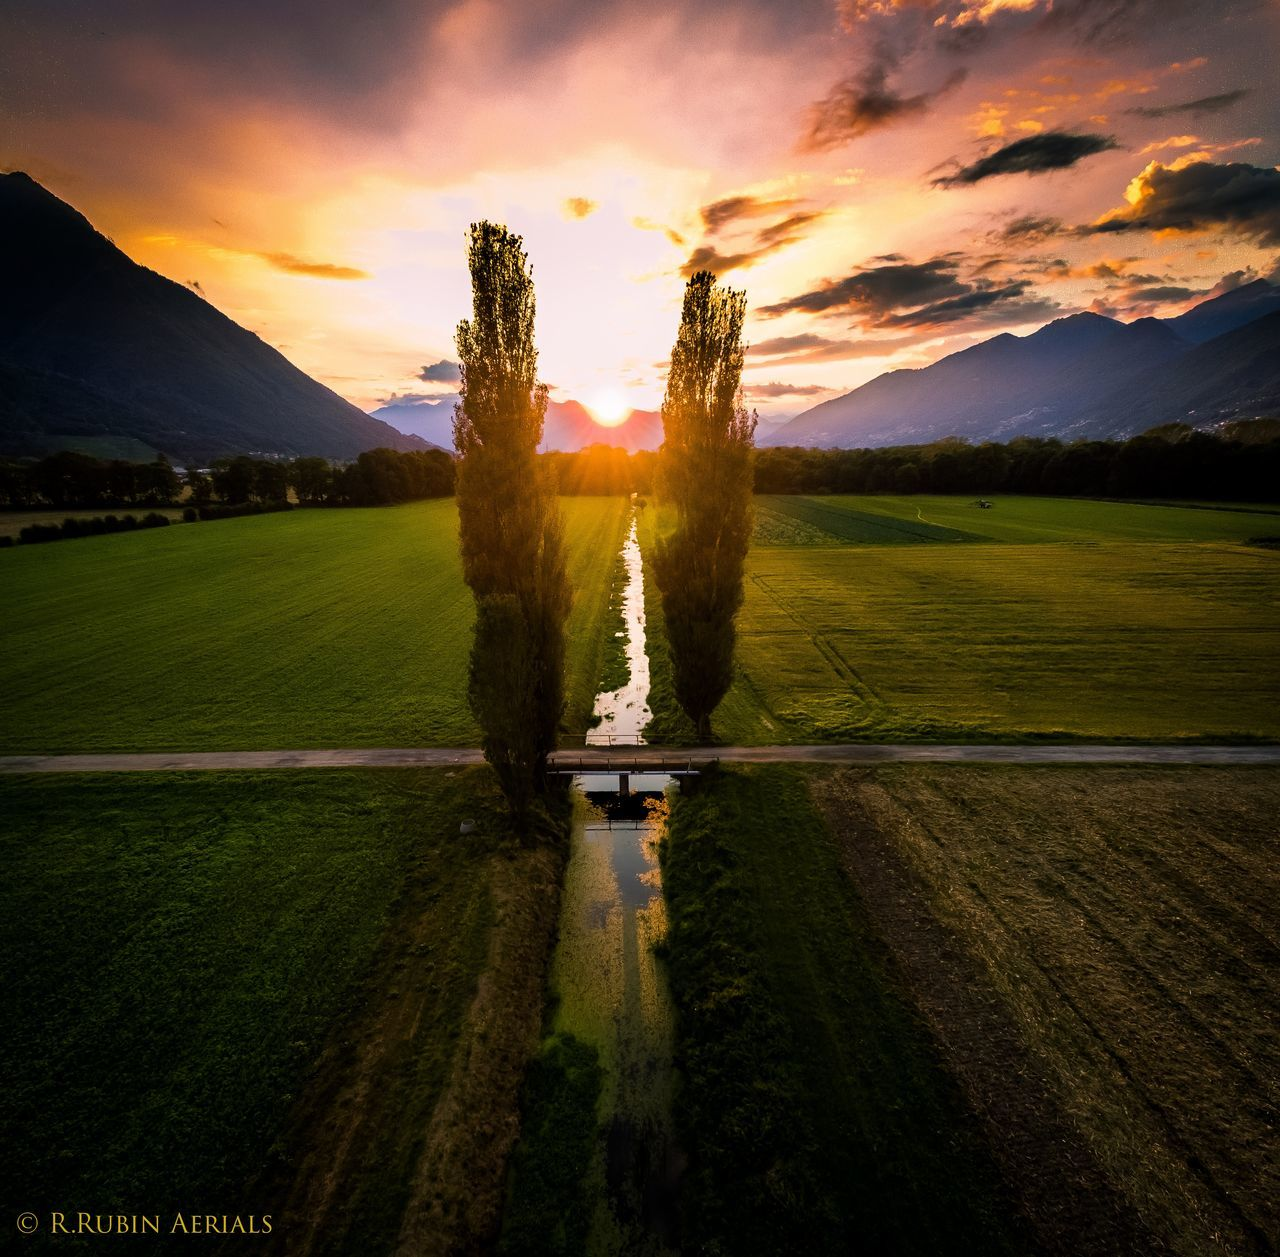 Mountain Landscape Scenics Tranquility Sun Agriculture Tranquil Scene Green Color Sky Field Nature Non-urban Scene Outdoors Cloud - Sky Beauty In Nature Sunbeam Motion Spraying Mountain Range Splashing Aerial View Aerial Photography Dronepointofview Dronephotography